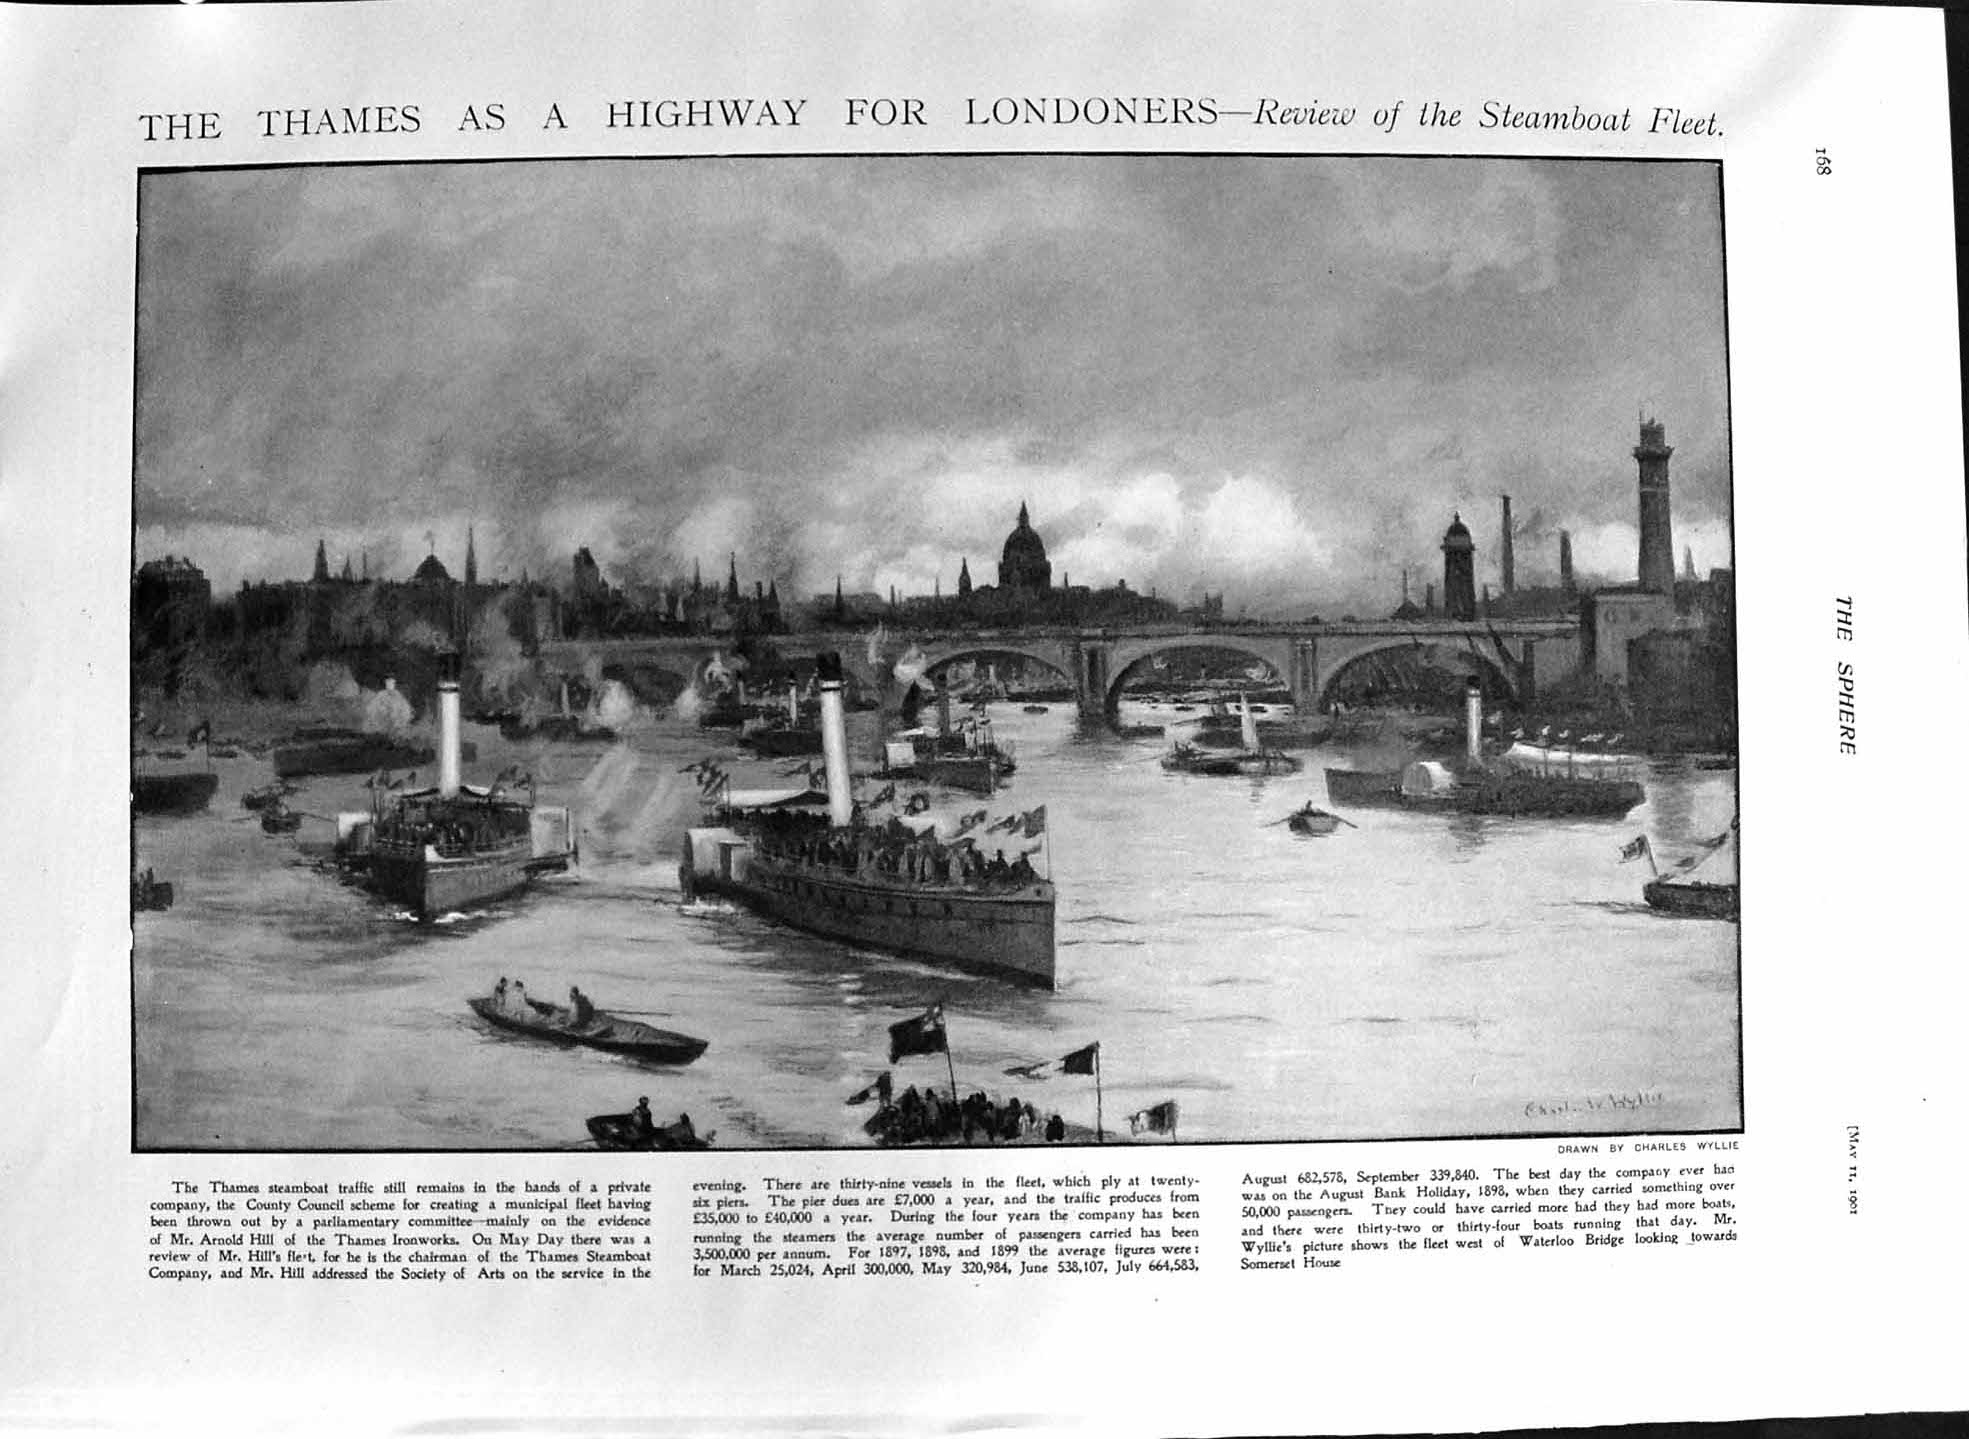 Old-Antique-Print-1901-River-Thames-Steamboat-Traffic-Covent-Garden-Opera-20th